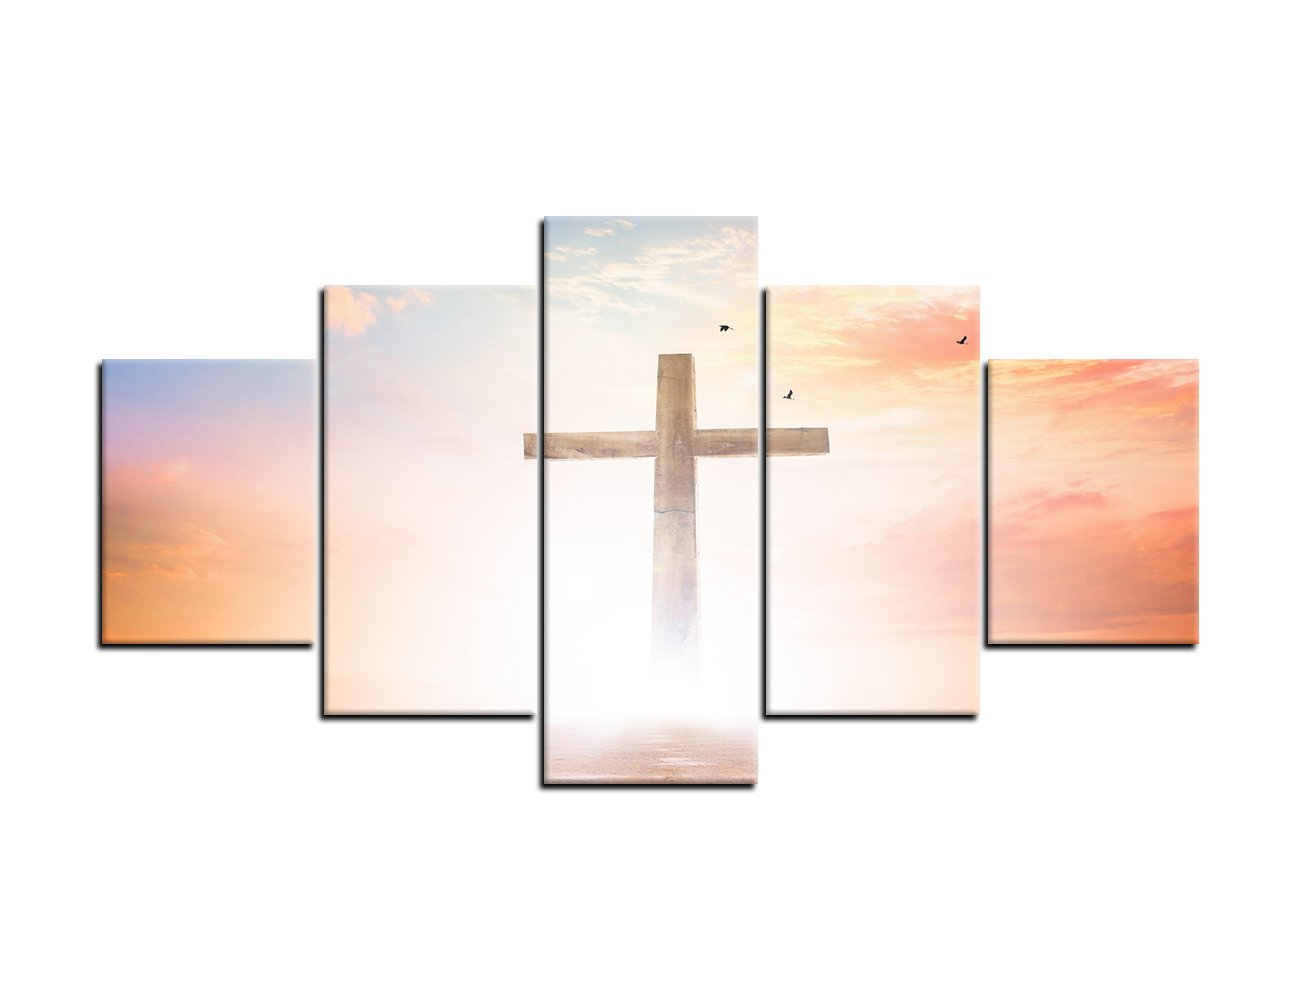 Amemny 5 Panel Jesus Vintage Wooden Cross Wall Art Canvas Painting Print Poster Yellow Rays Background Painting Christian Wall Decoration For Living